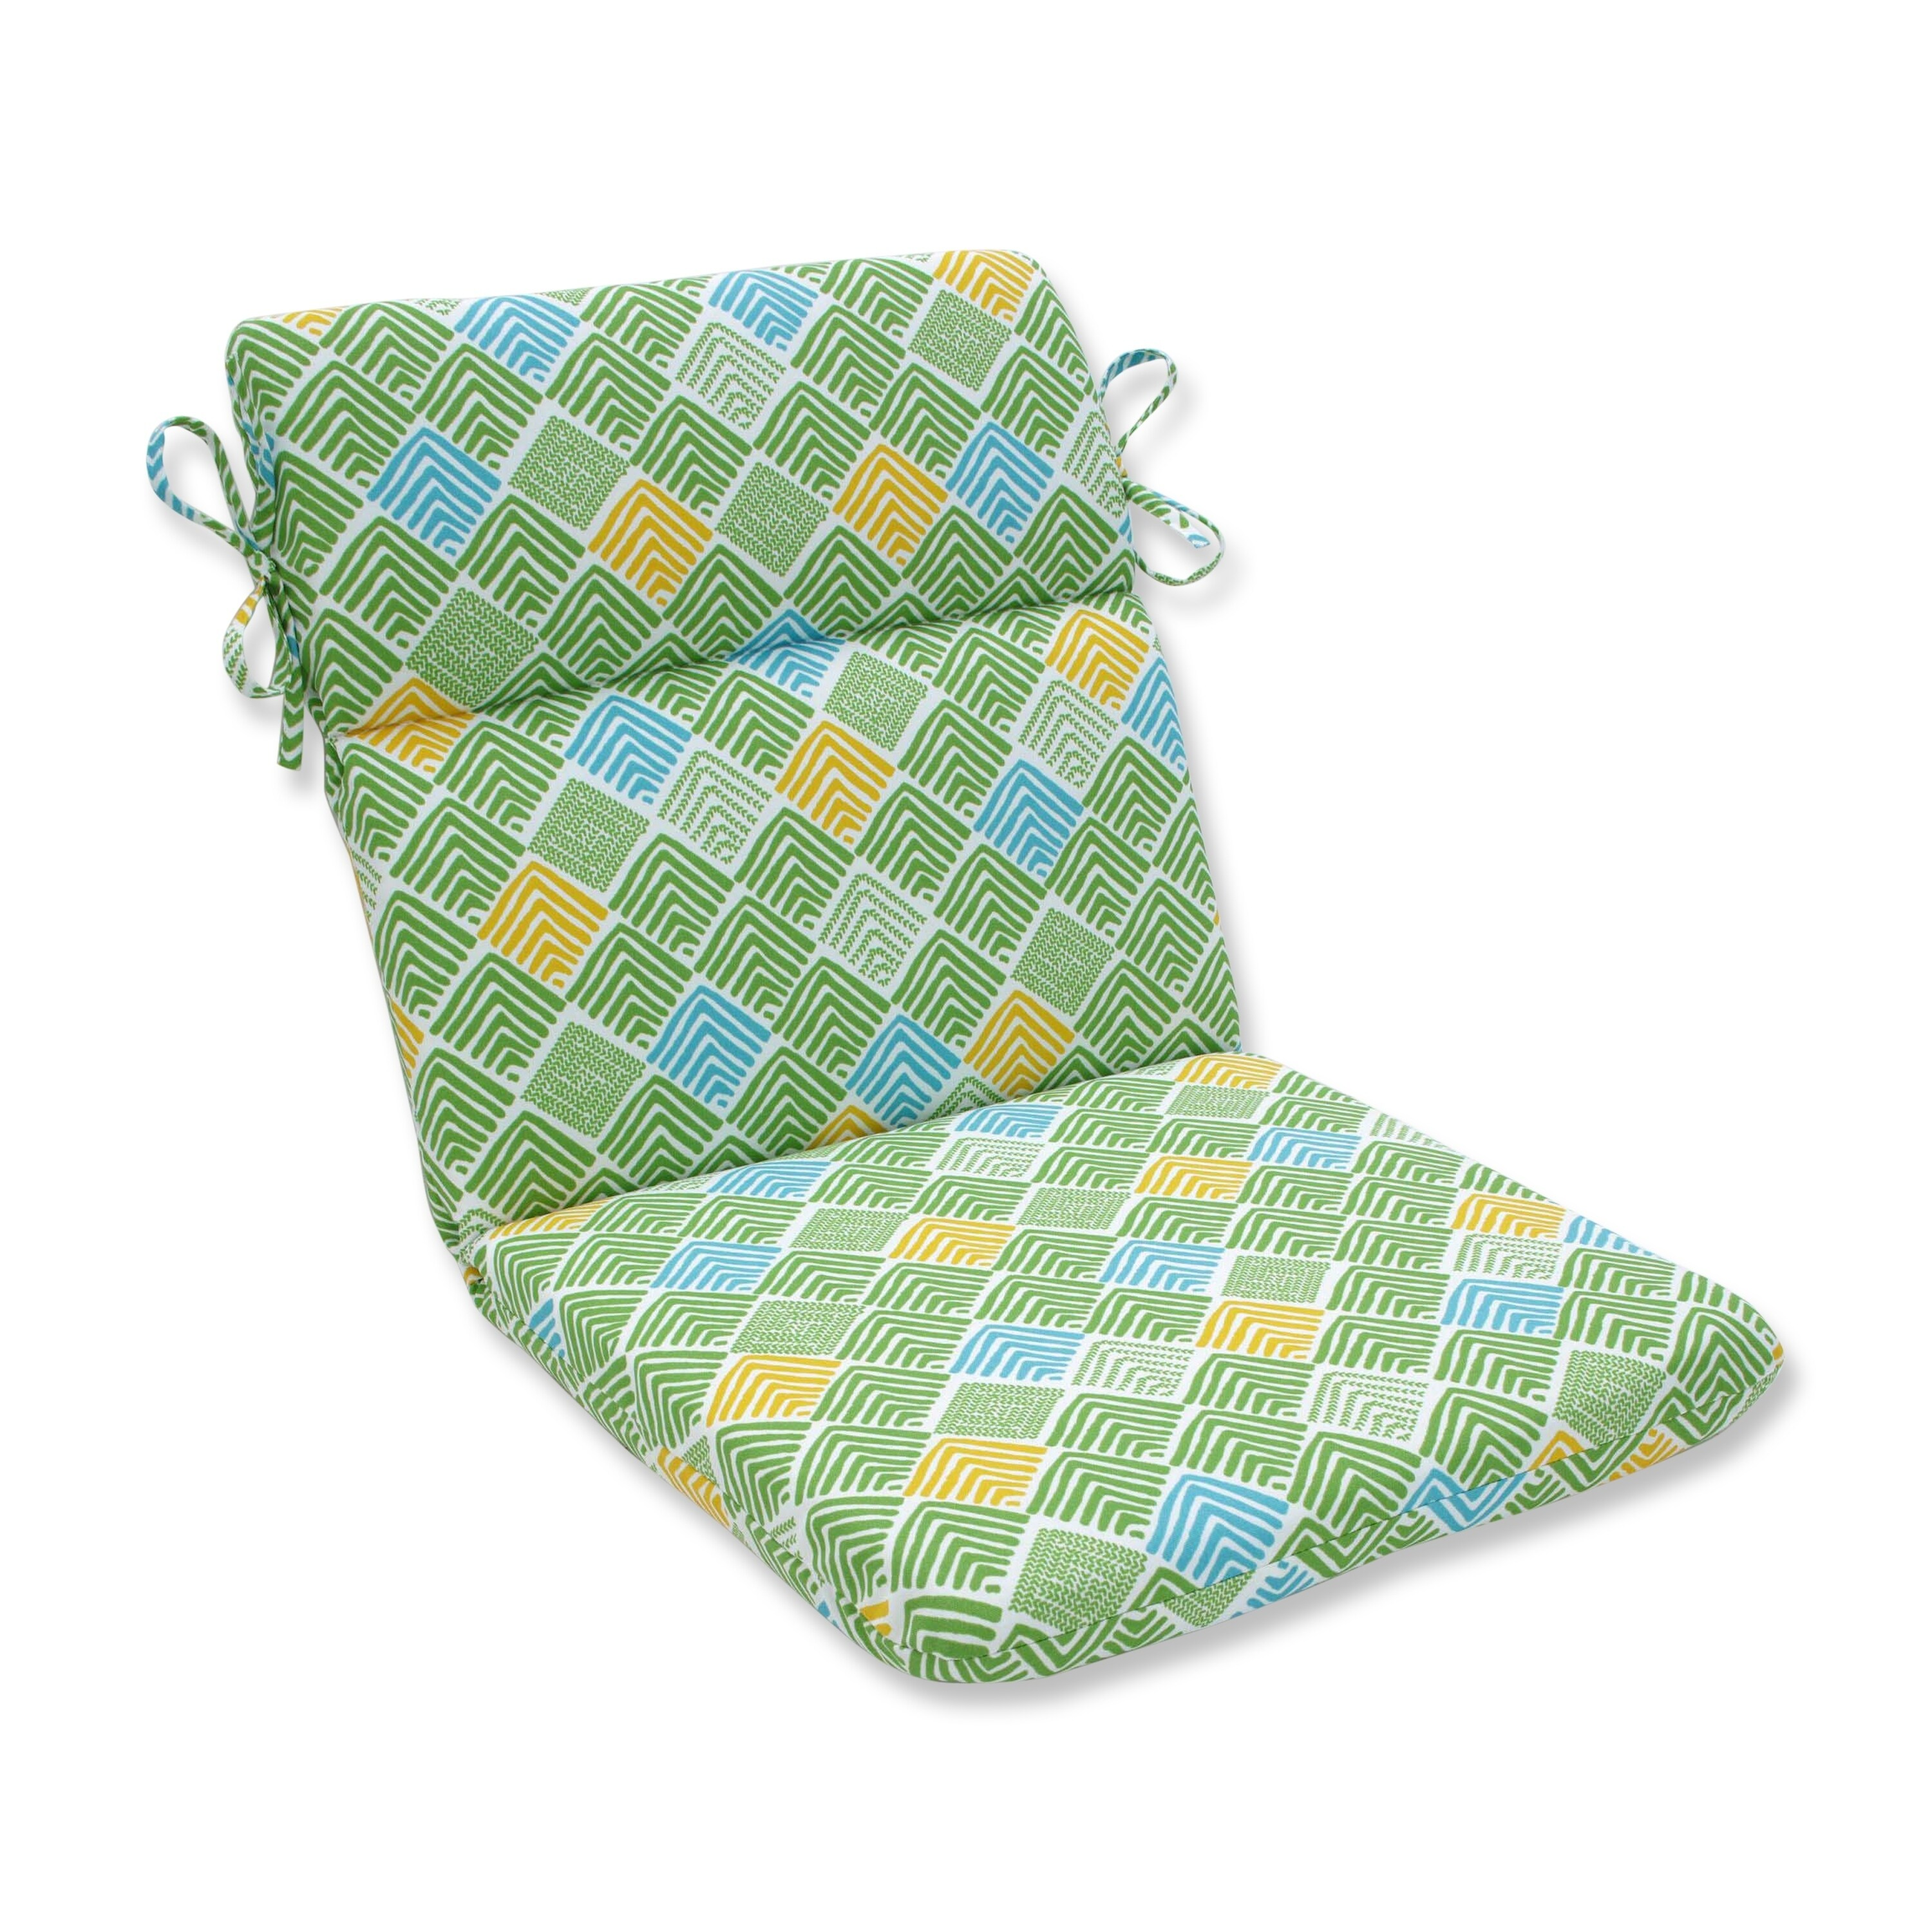 Shop Belk Seaglass Rounded Corners Chair Cushion   On Sale   Free Shipping  Today   Overstock   27283605